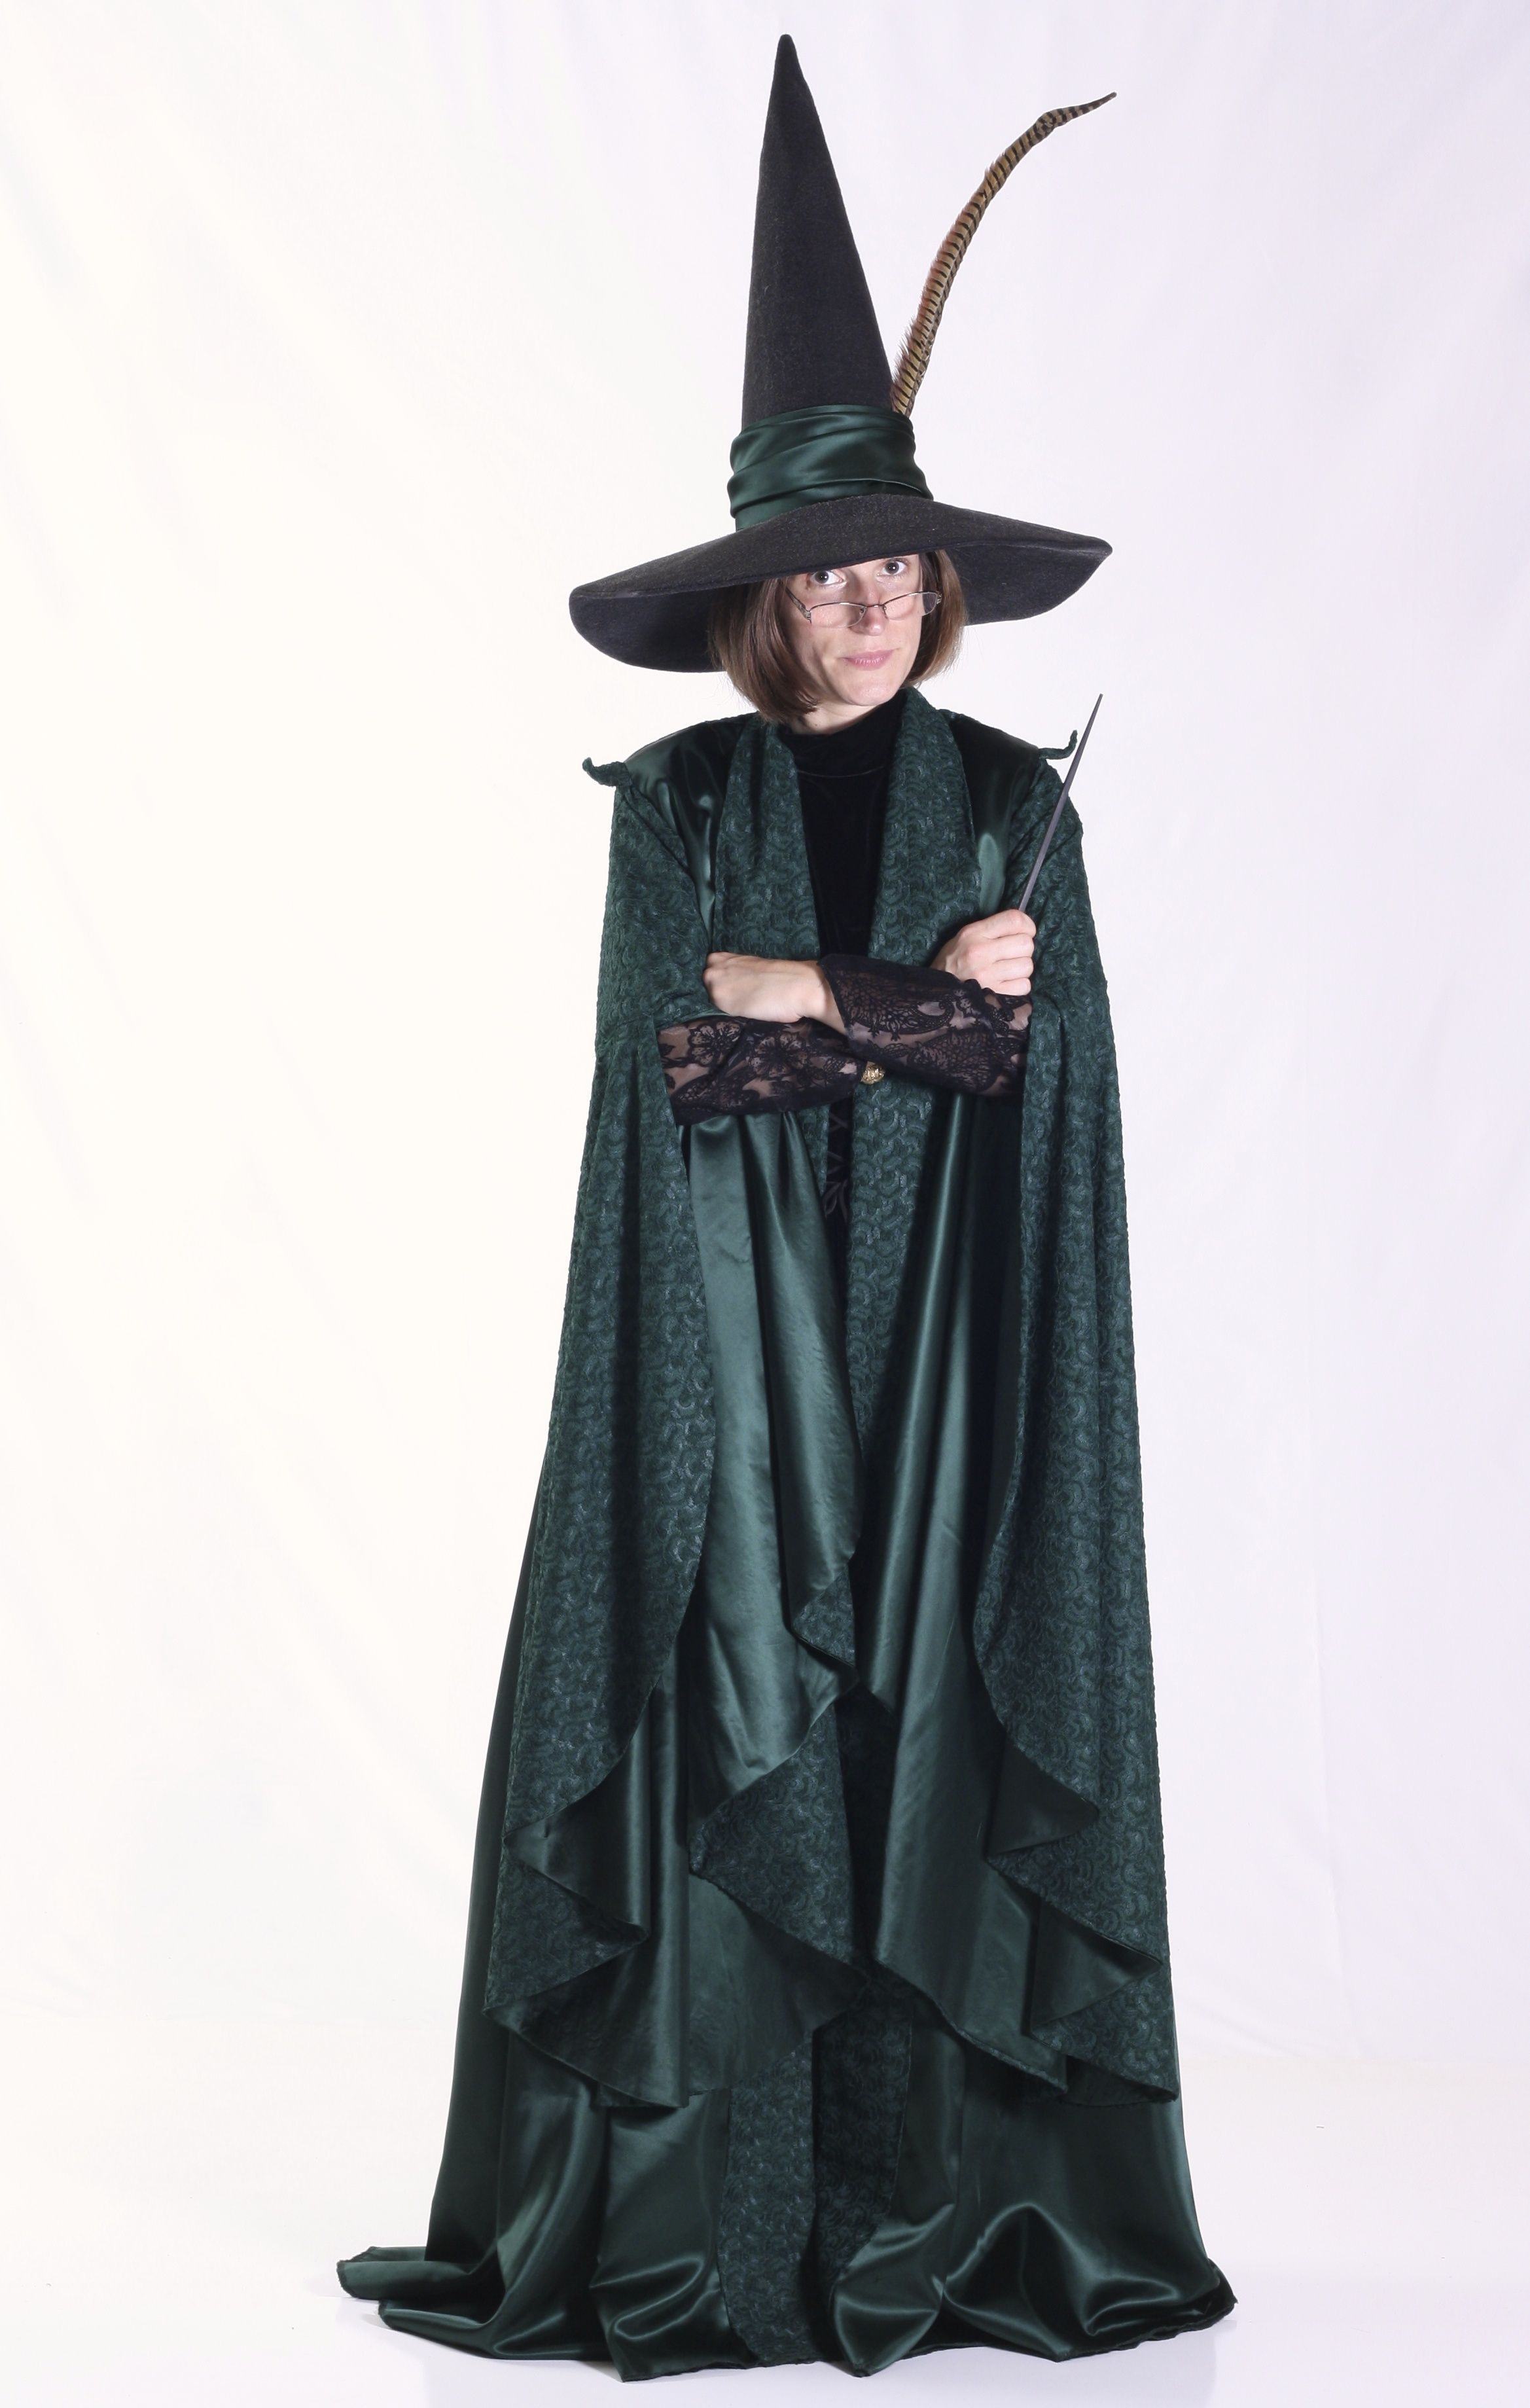 the gallery for gt professor mcgonagall costume